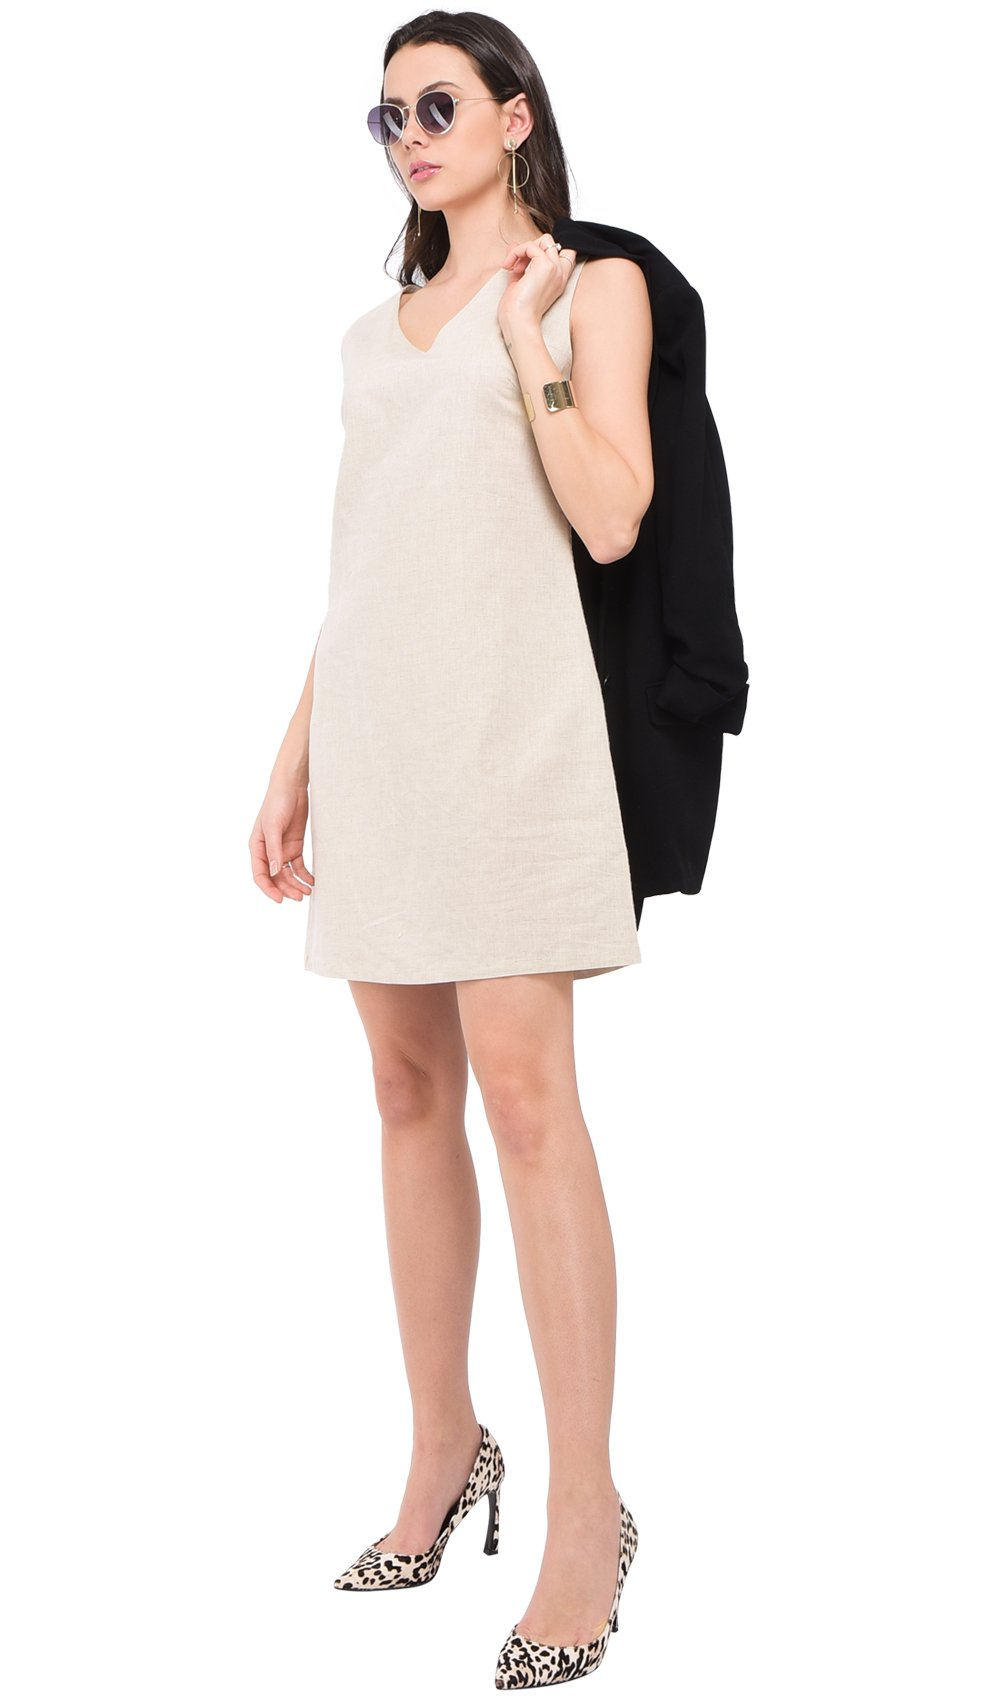 V-NECK SLEEVELESS DRESS WITH LATERAL ZIP